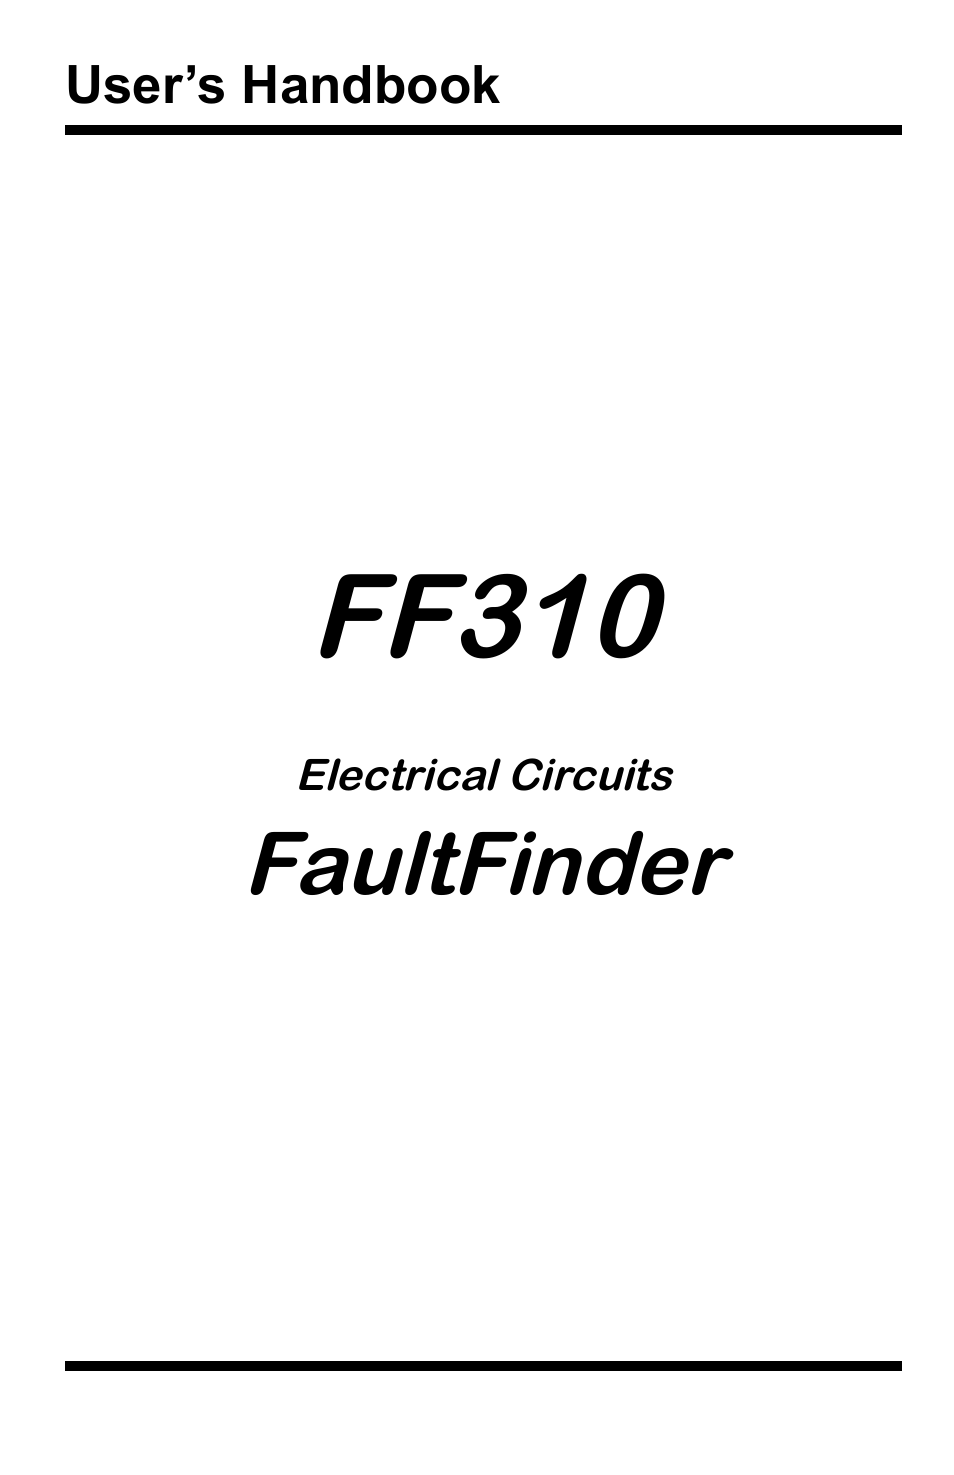 general technologies ff310 fault finder for electrical wiring open    short circuit user manual